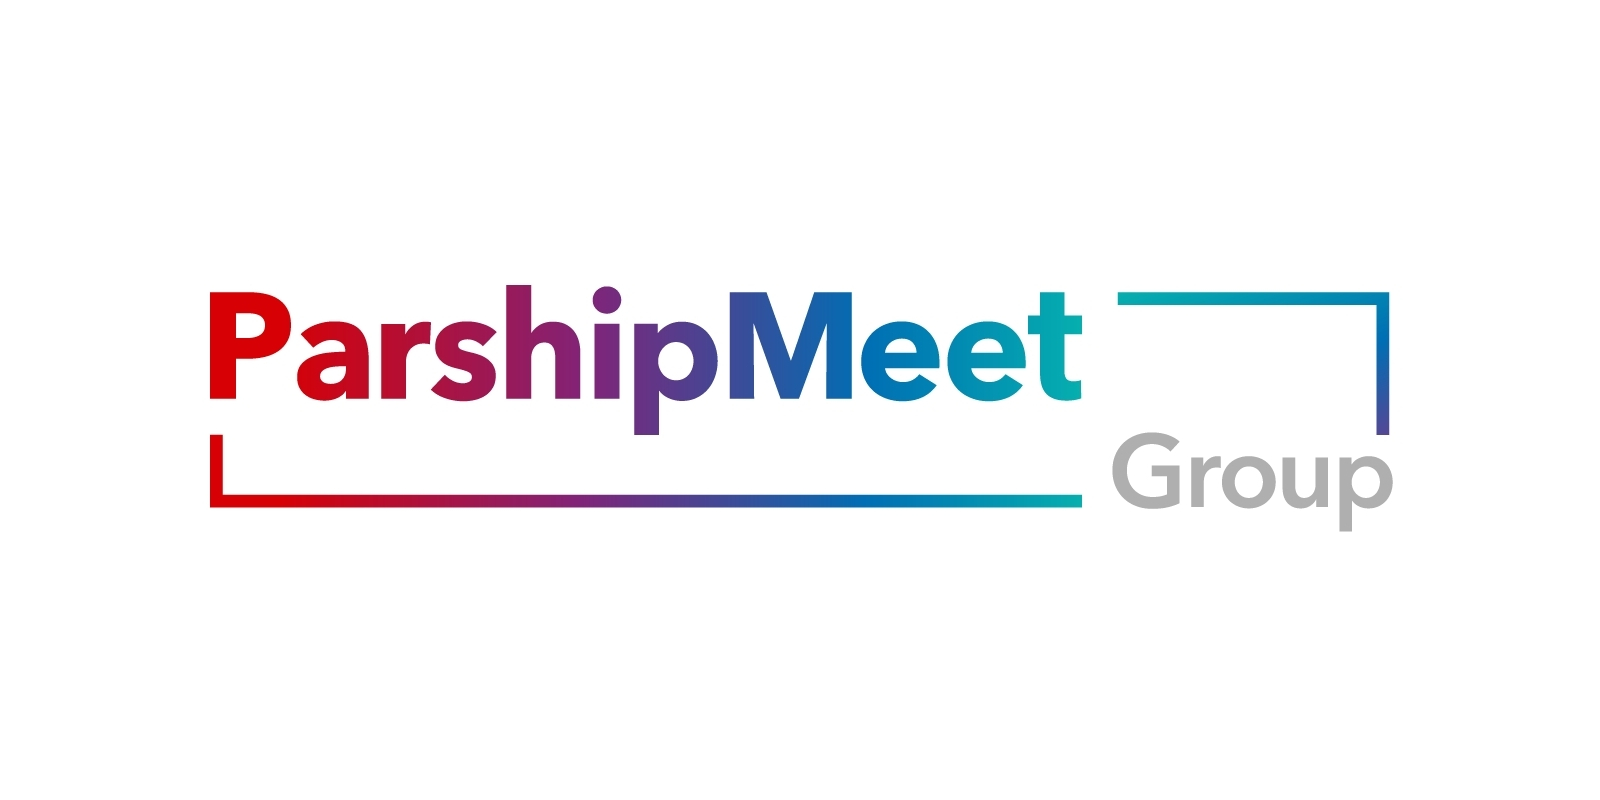 New Company 'ParshipMeet Group' Formed After Acquisition Completion